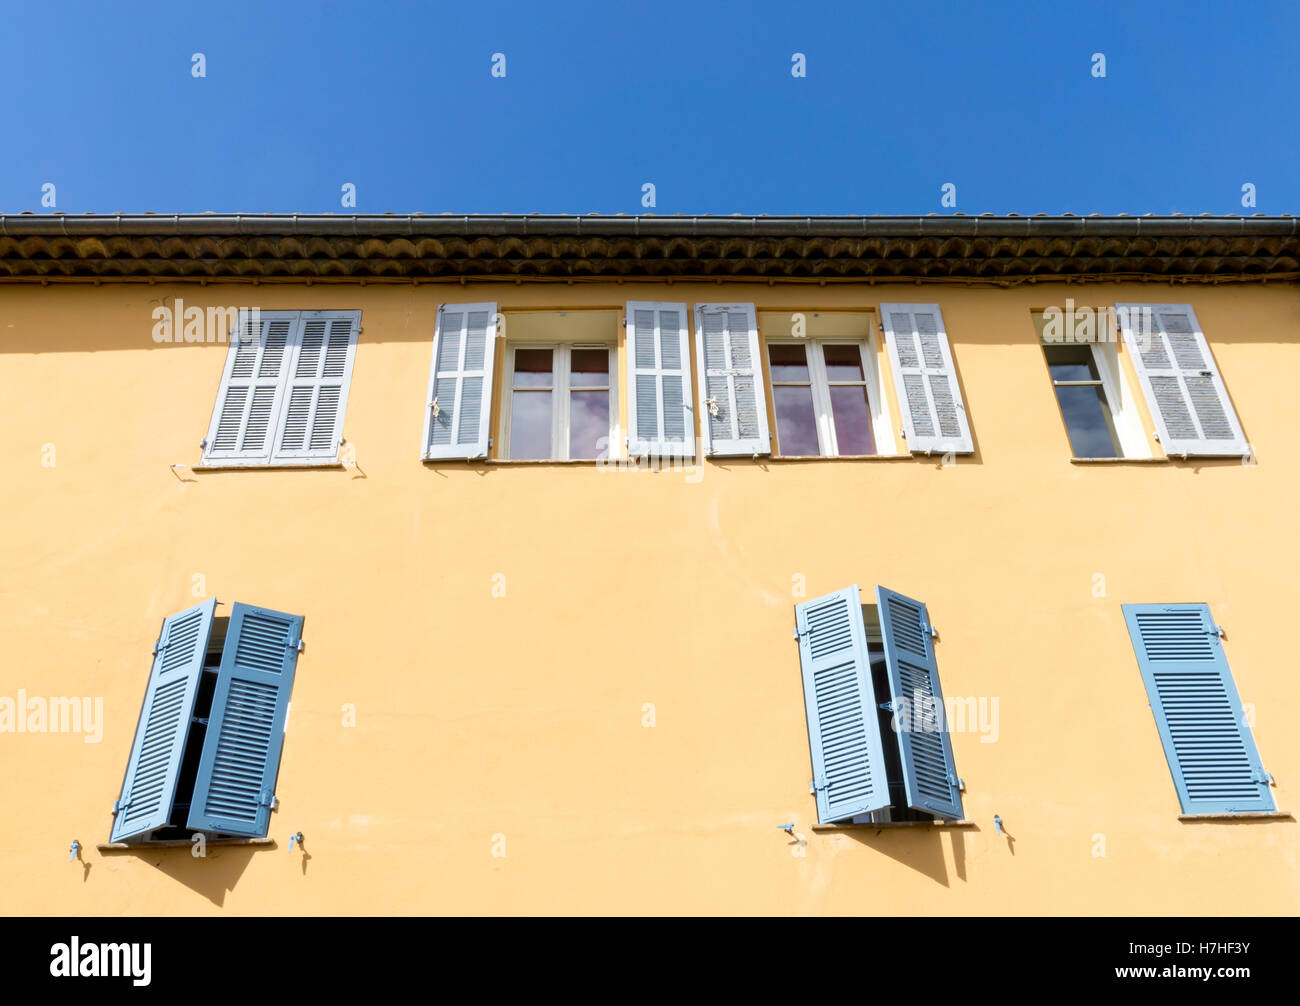 Shuttered windows on a building in Sainte Maxime, Var, France. - Stock Image